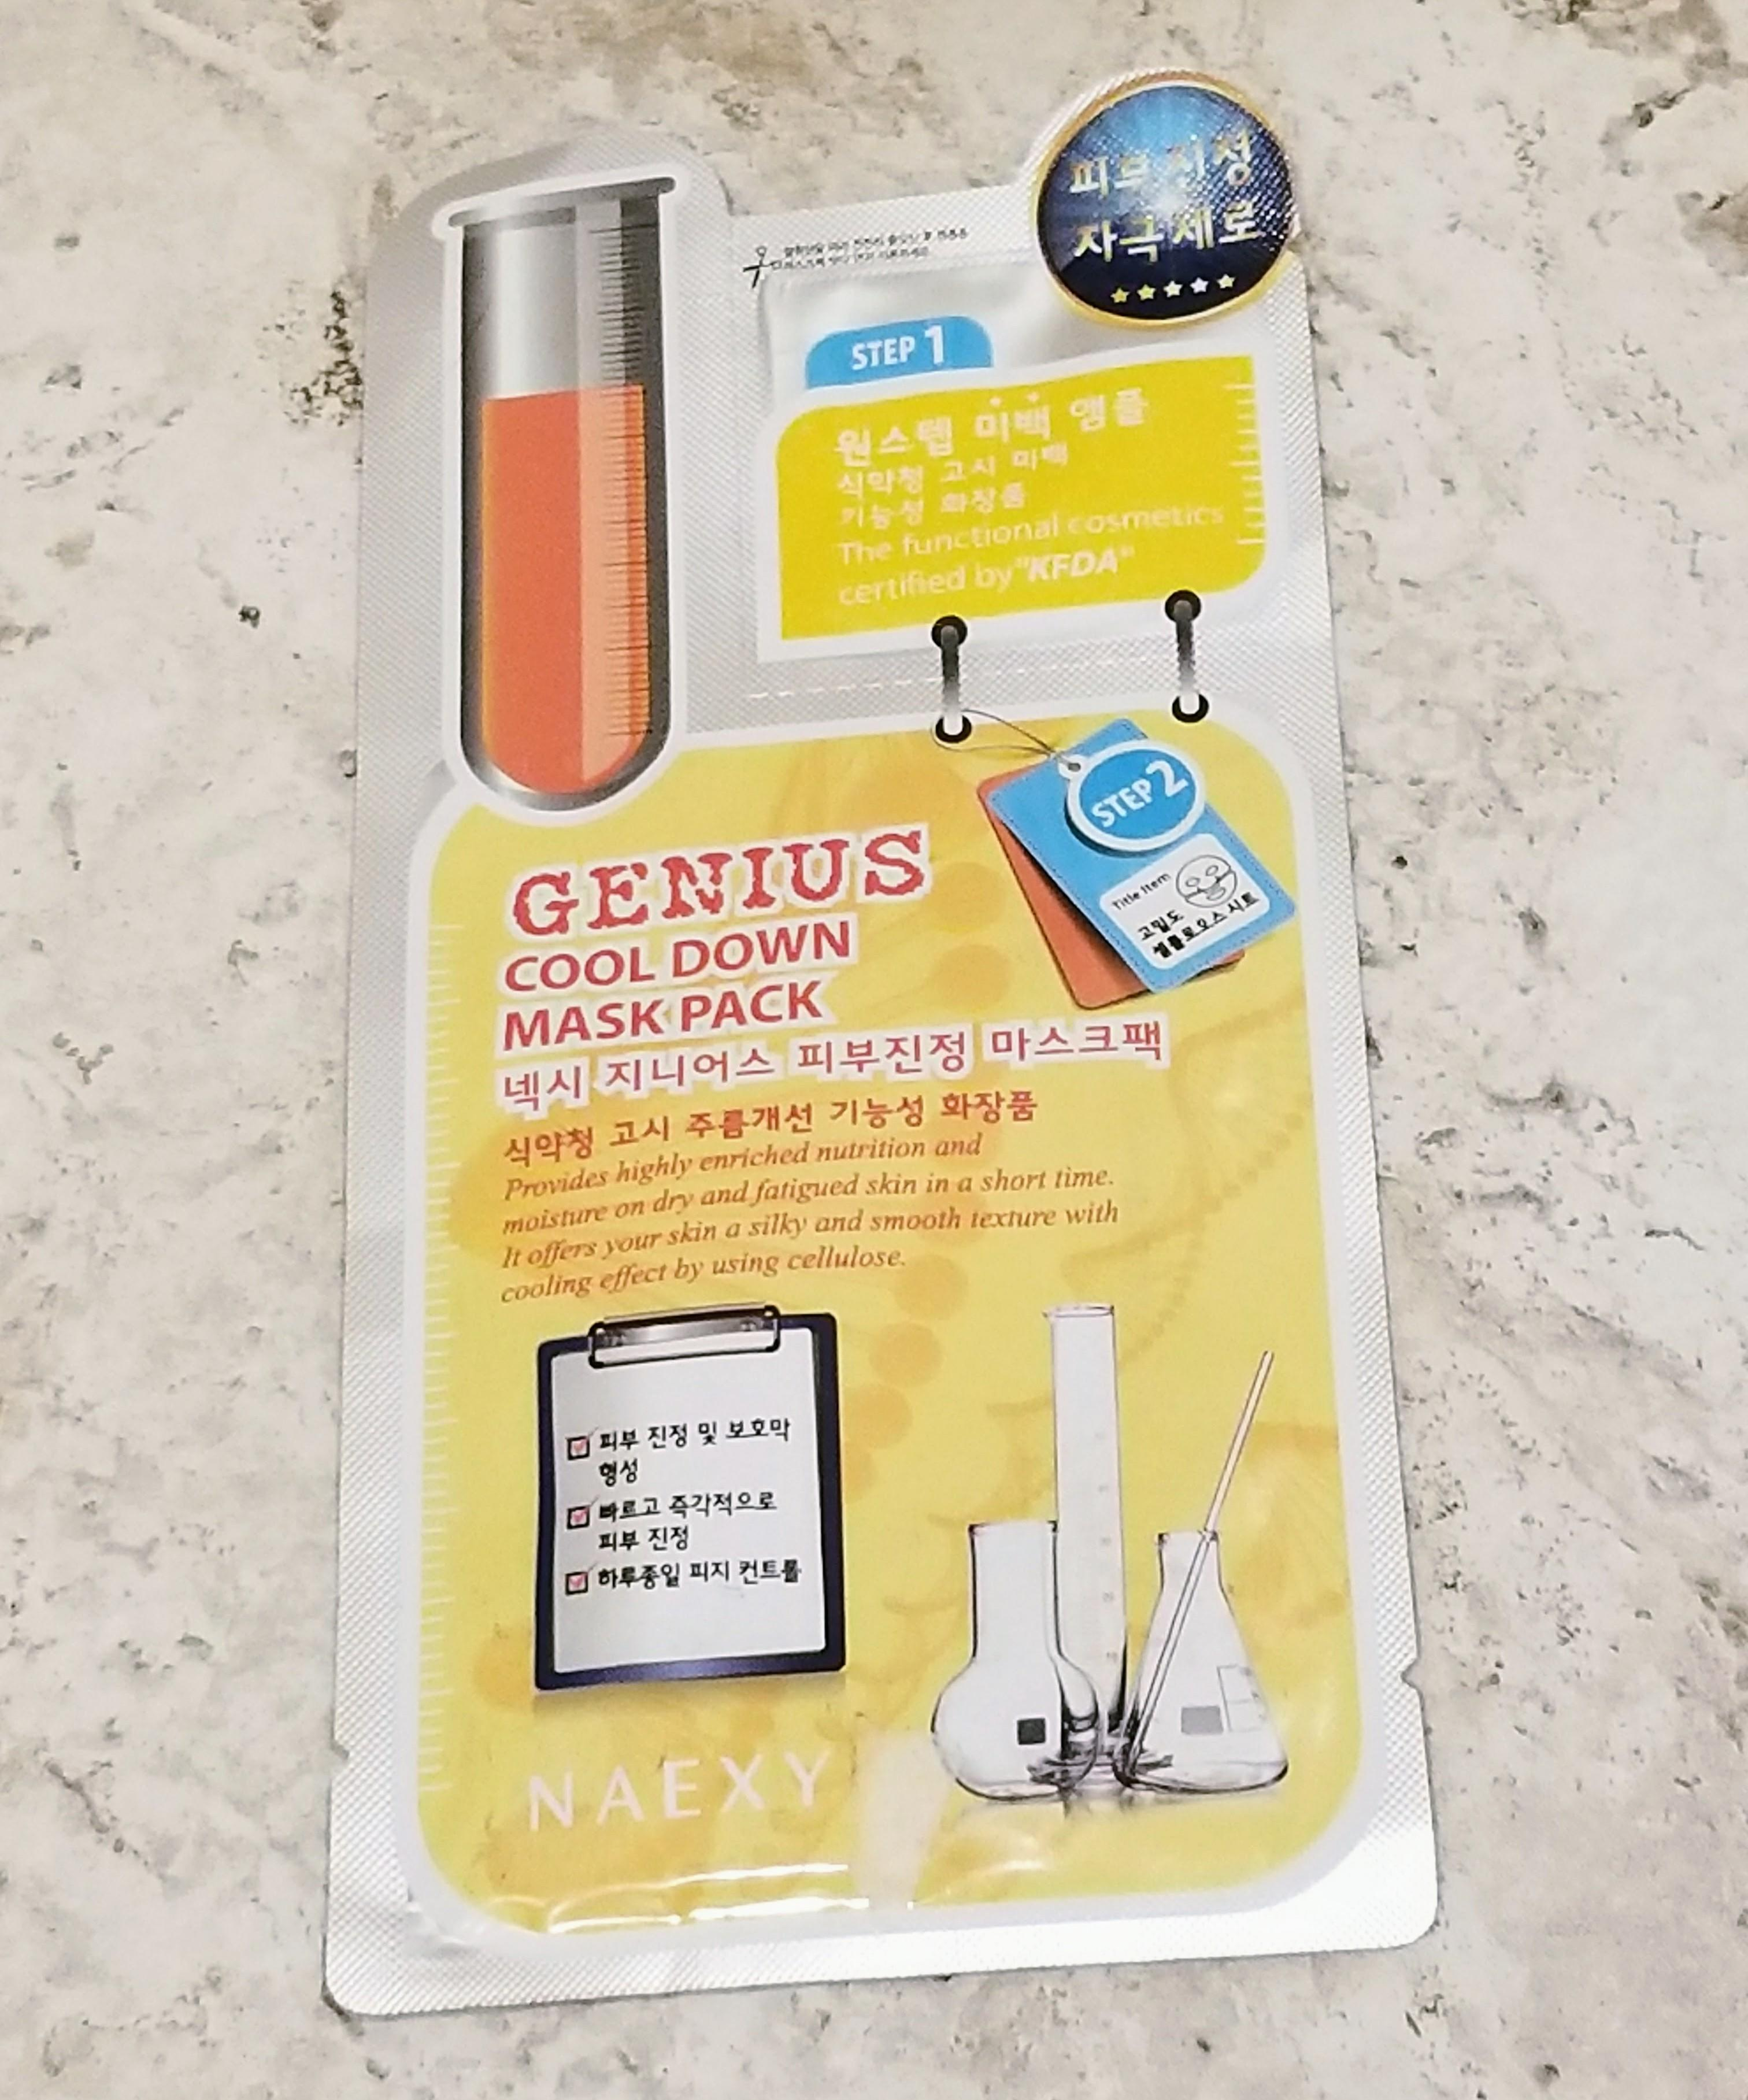 Naexy Genius Cool Down Mask